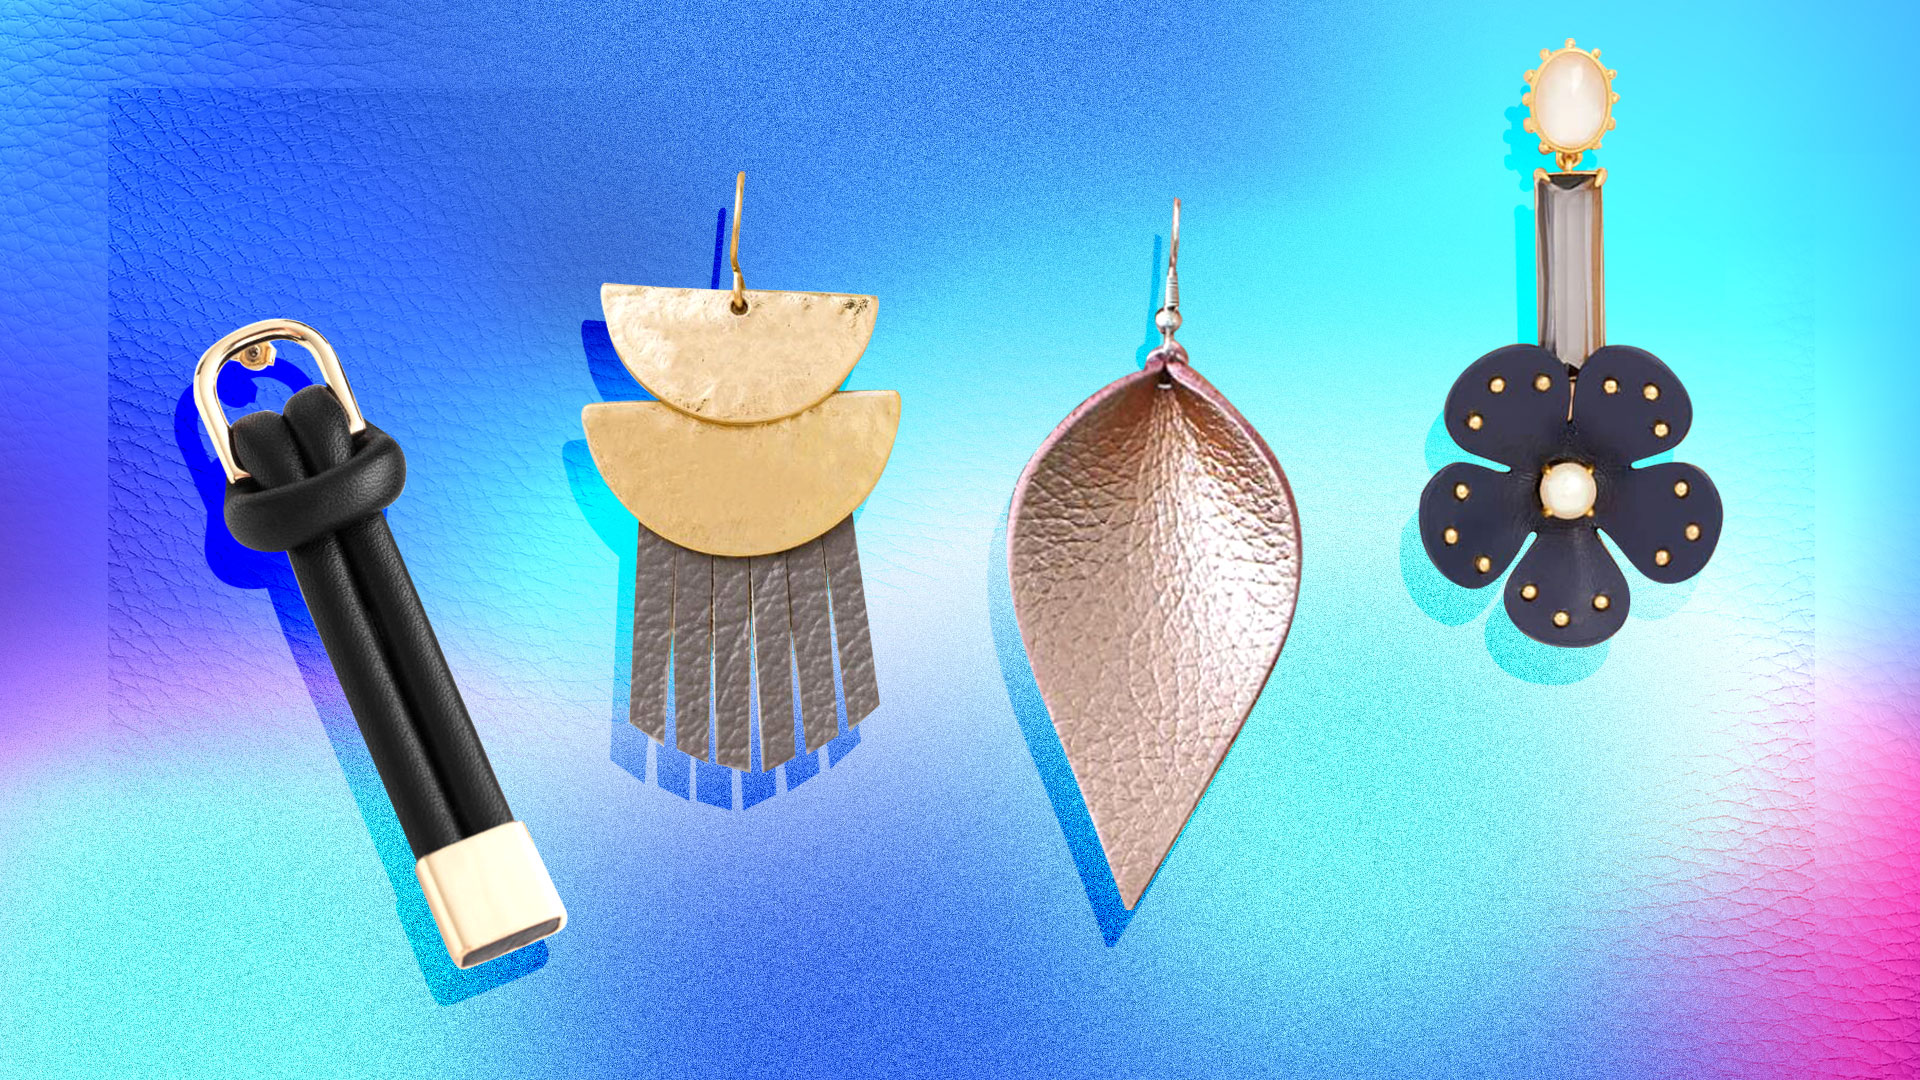 Leather Earrings Are the Underrated Statement Piece Your Jewelry Collection Needs